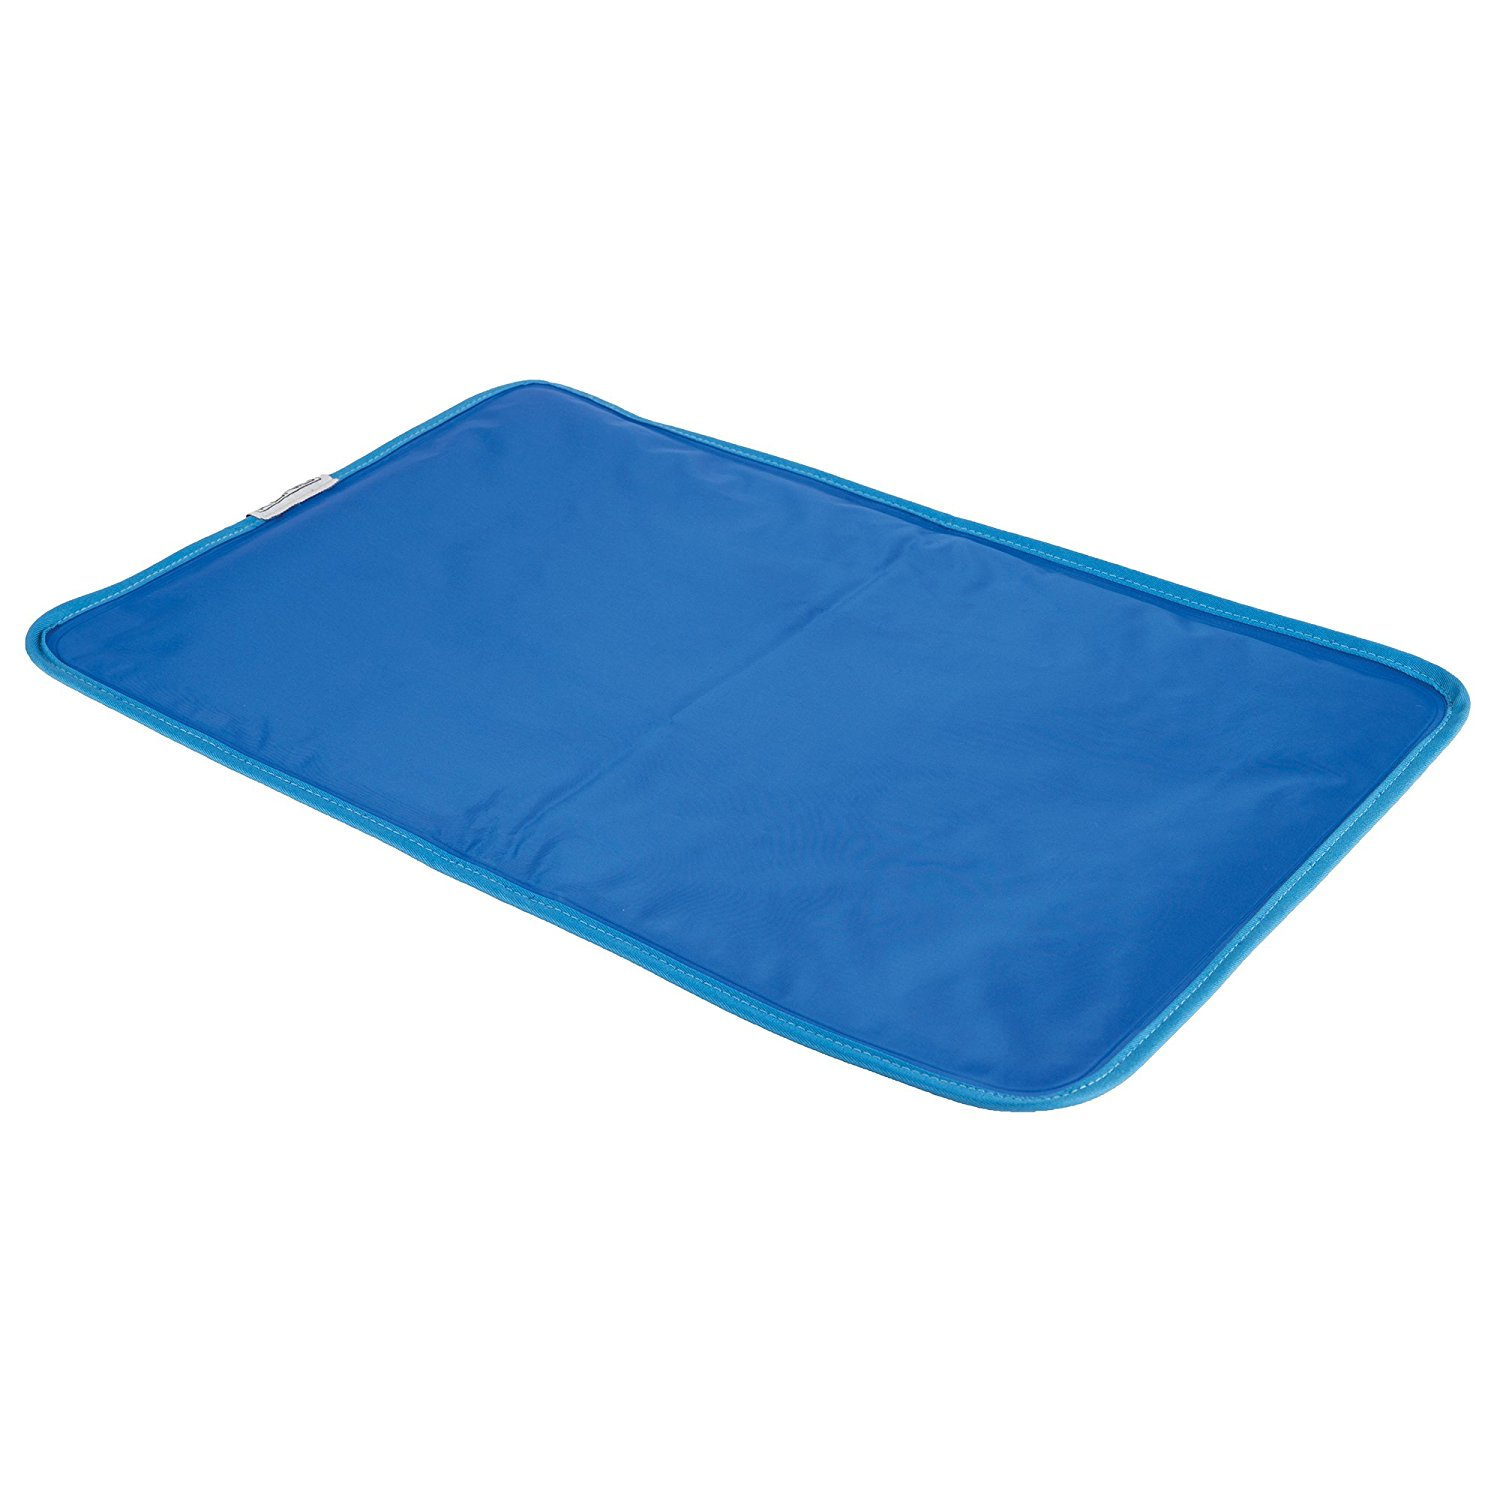 Magic Max Cool Cooling Gel Pad Pillow Cooling Mat Cushion